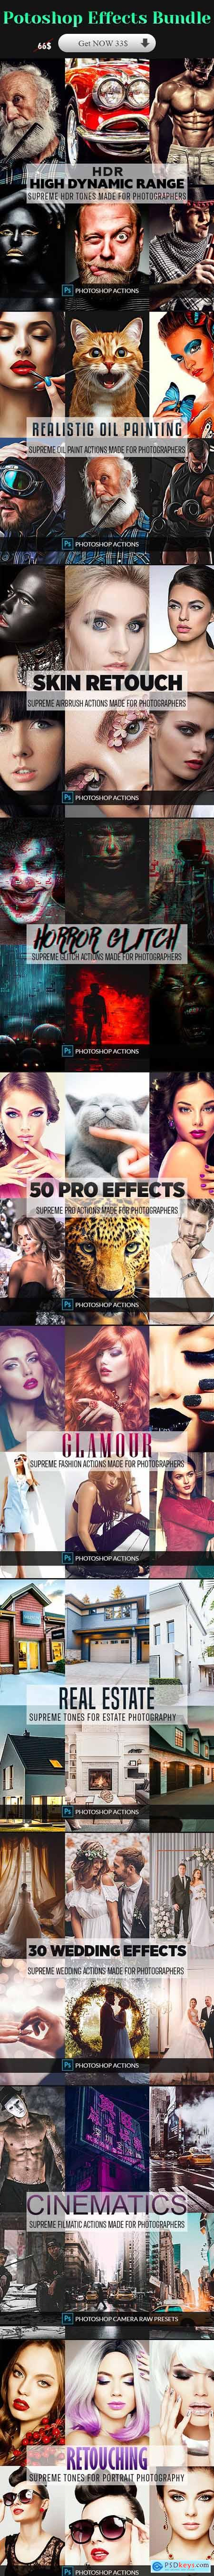 Photoshop Effects Bundle 23634769